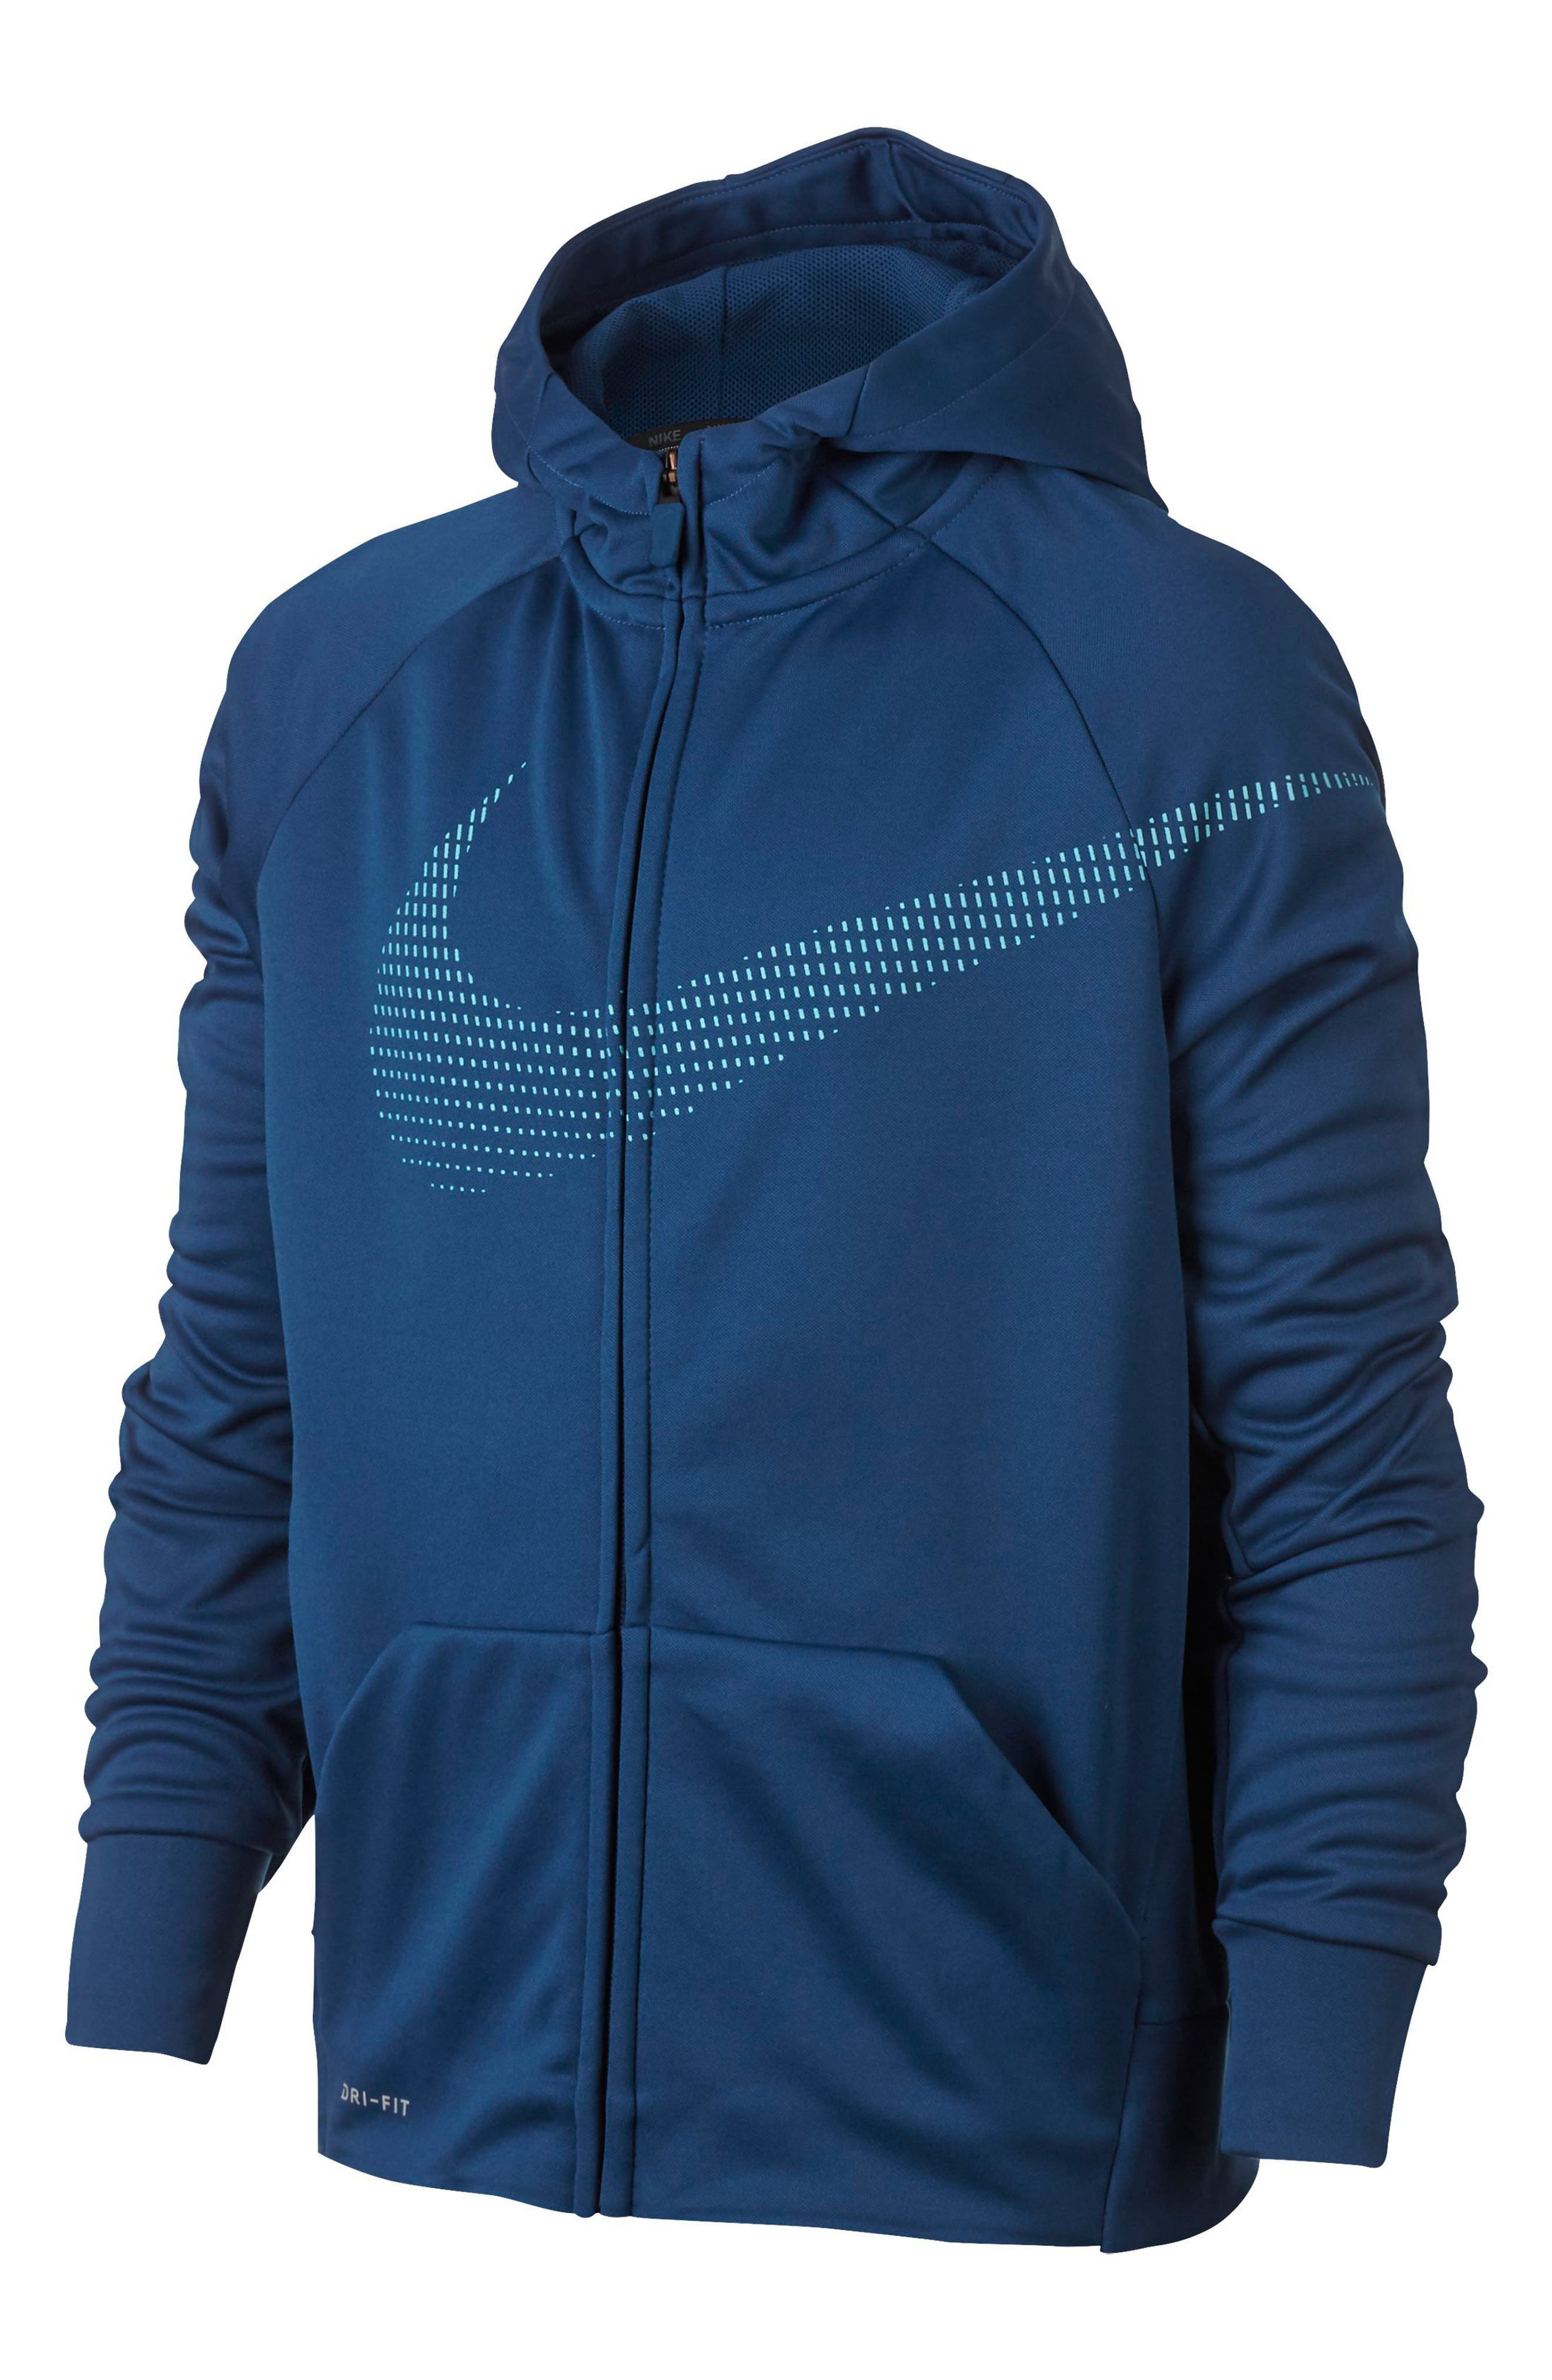 Main Image - Nike Therma Dry Hoodie (Little Boys & Big Boys)